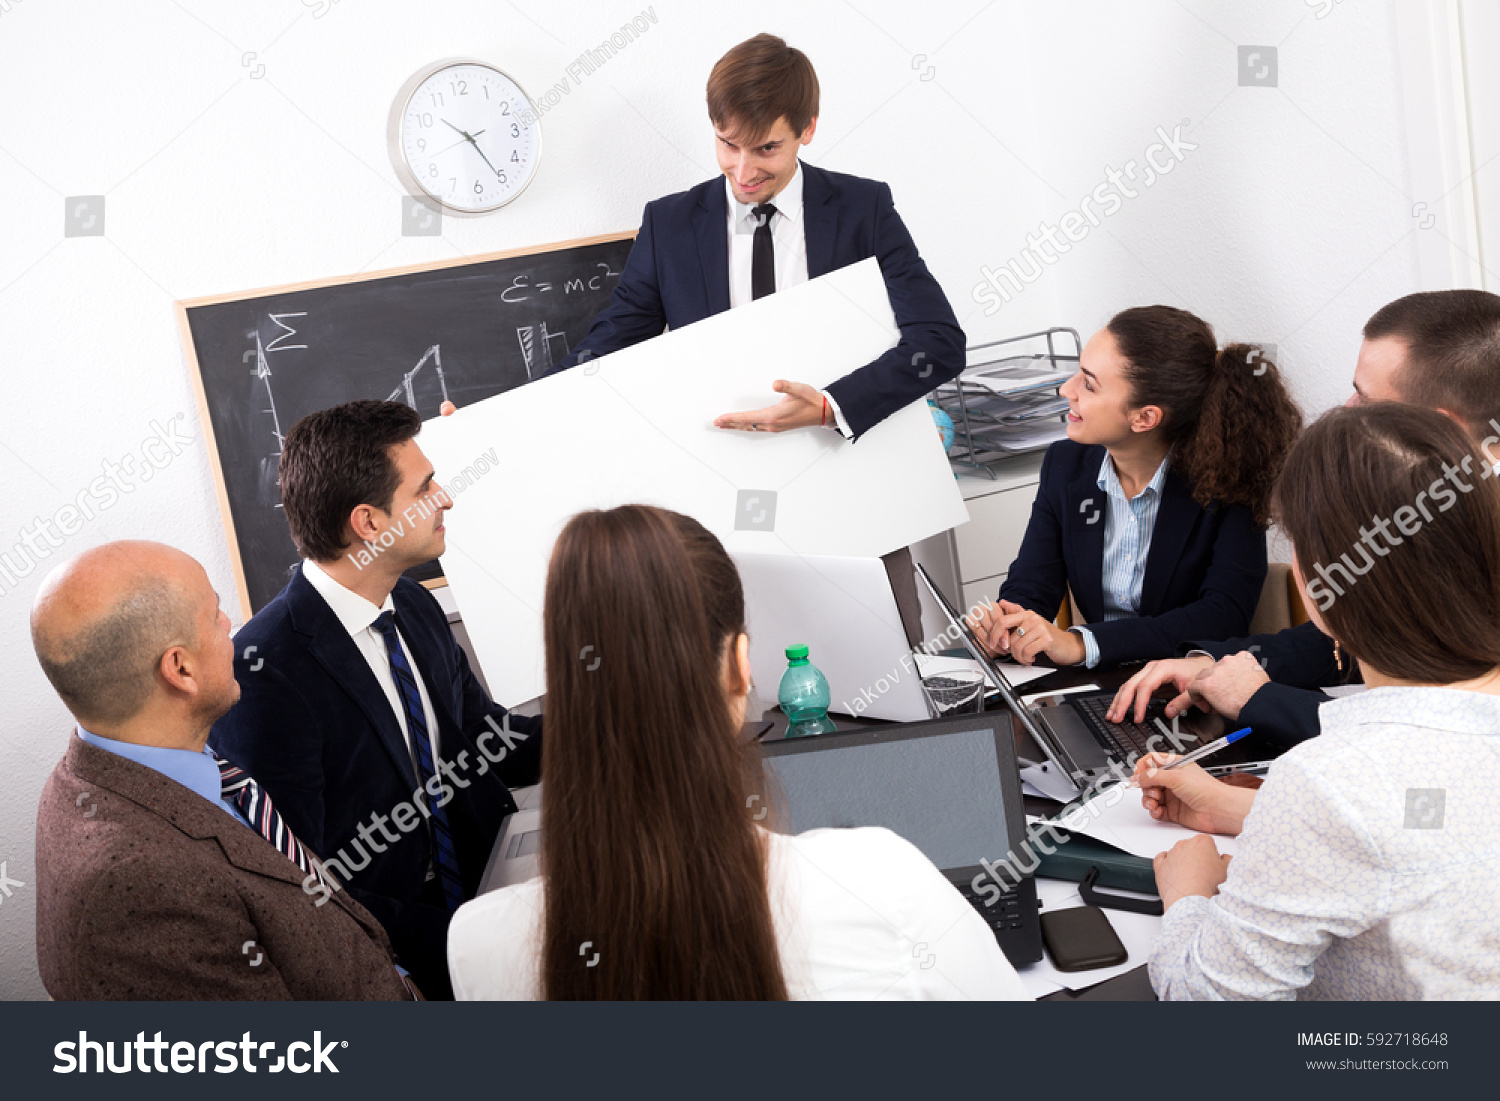 the office poster. Successful Businessman Presents New Development Plan At Poster In The Office T